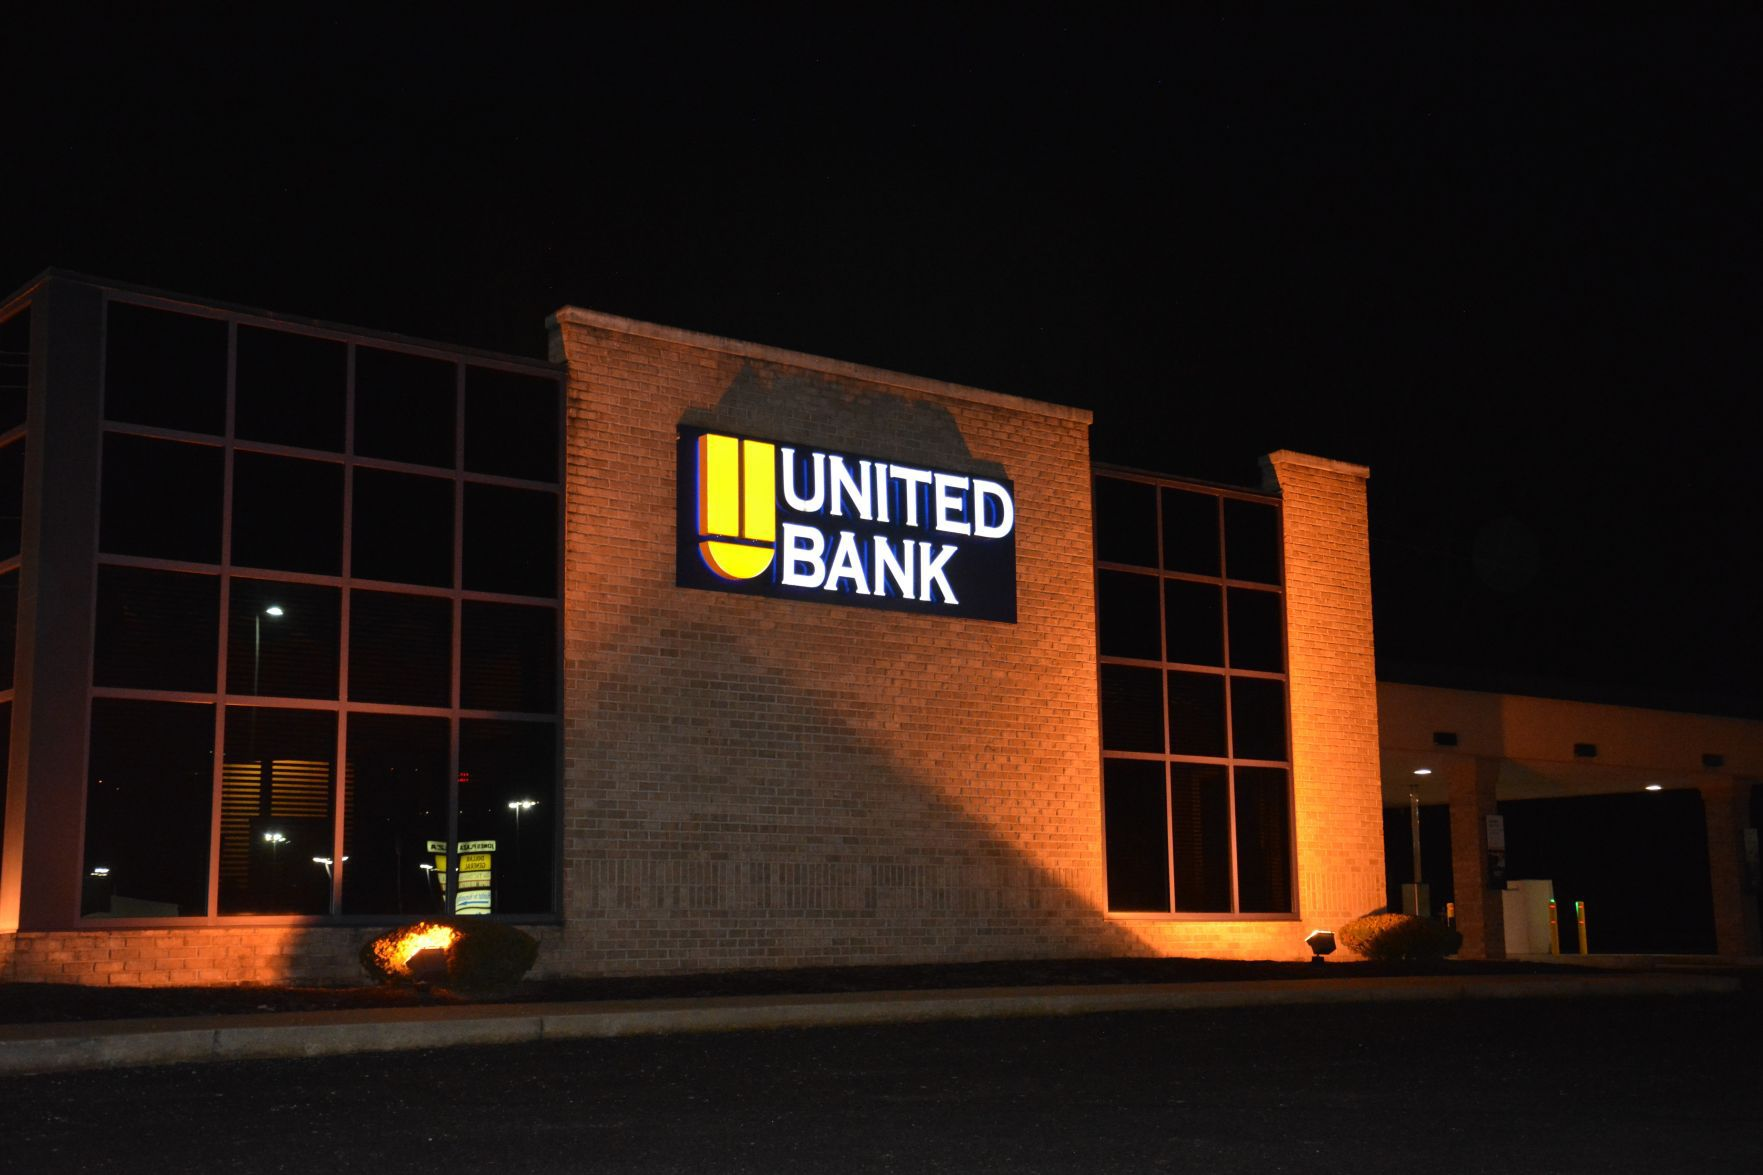 how 2 write a resignation letter%0A United Bank